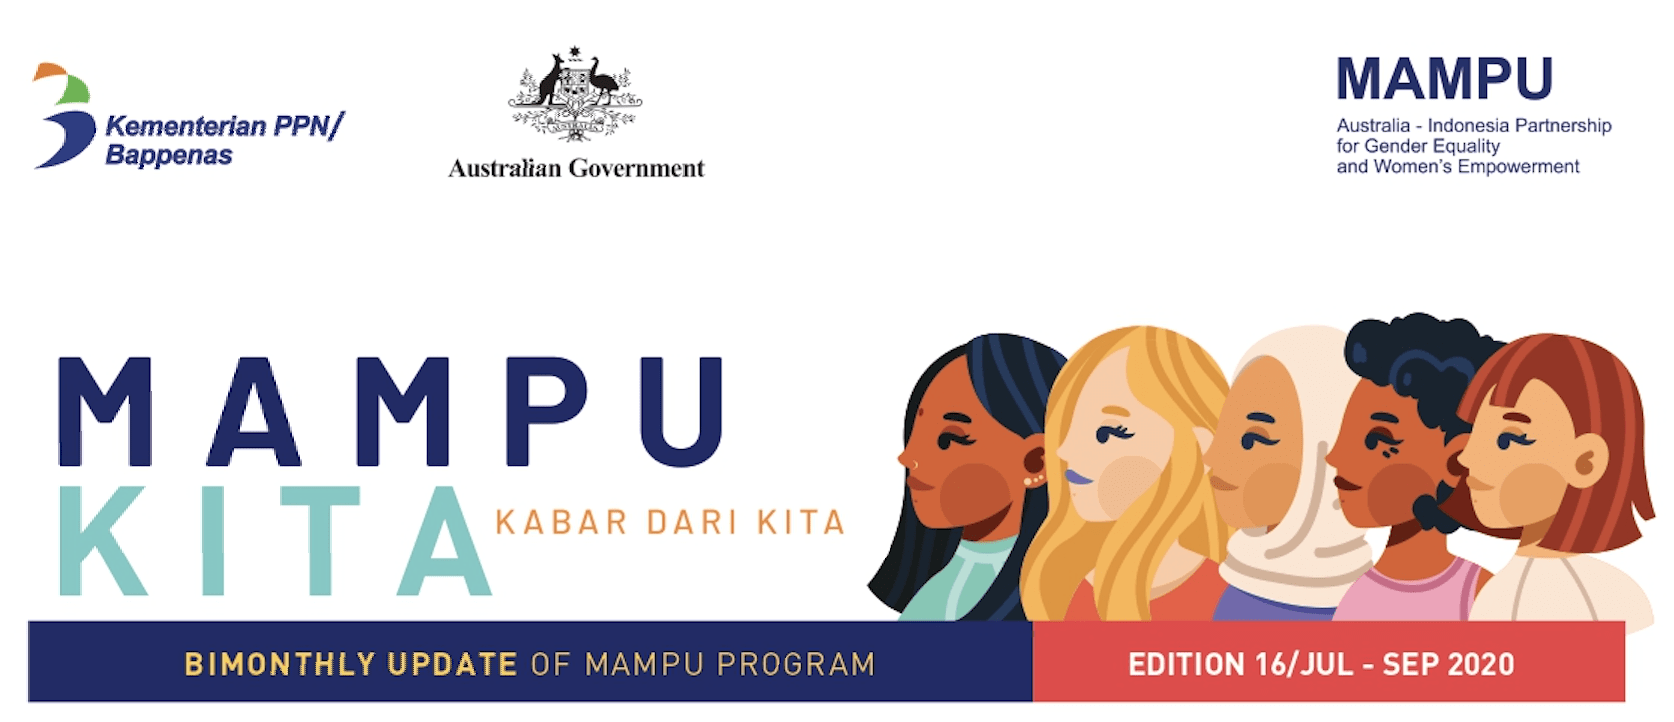 Projects in Action – Bimonthly Update (Edition 16): Australia-Indonesia Partnership for Gender Equality and Women's Empowerment (MAMPU)